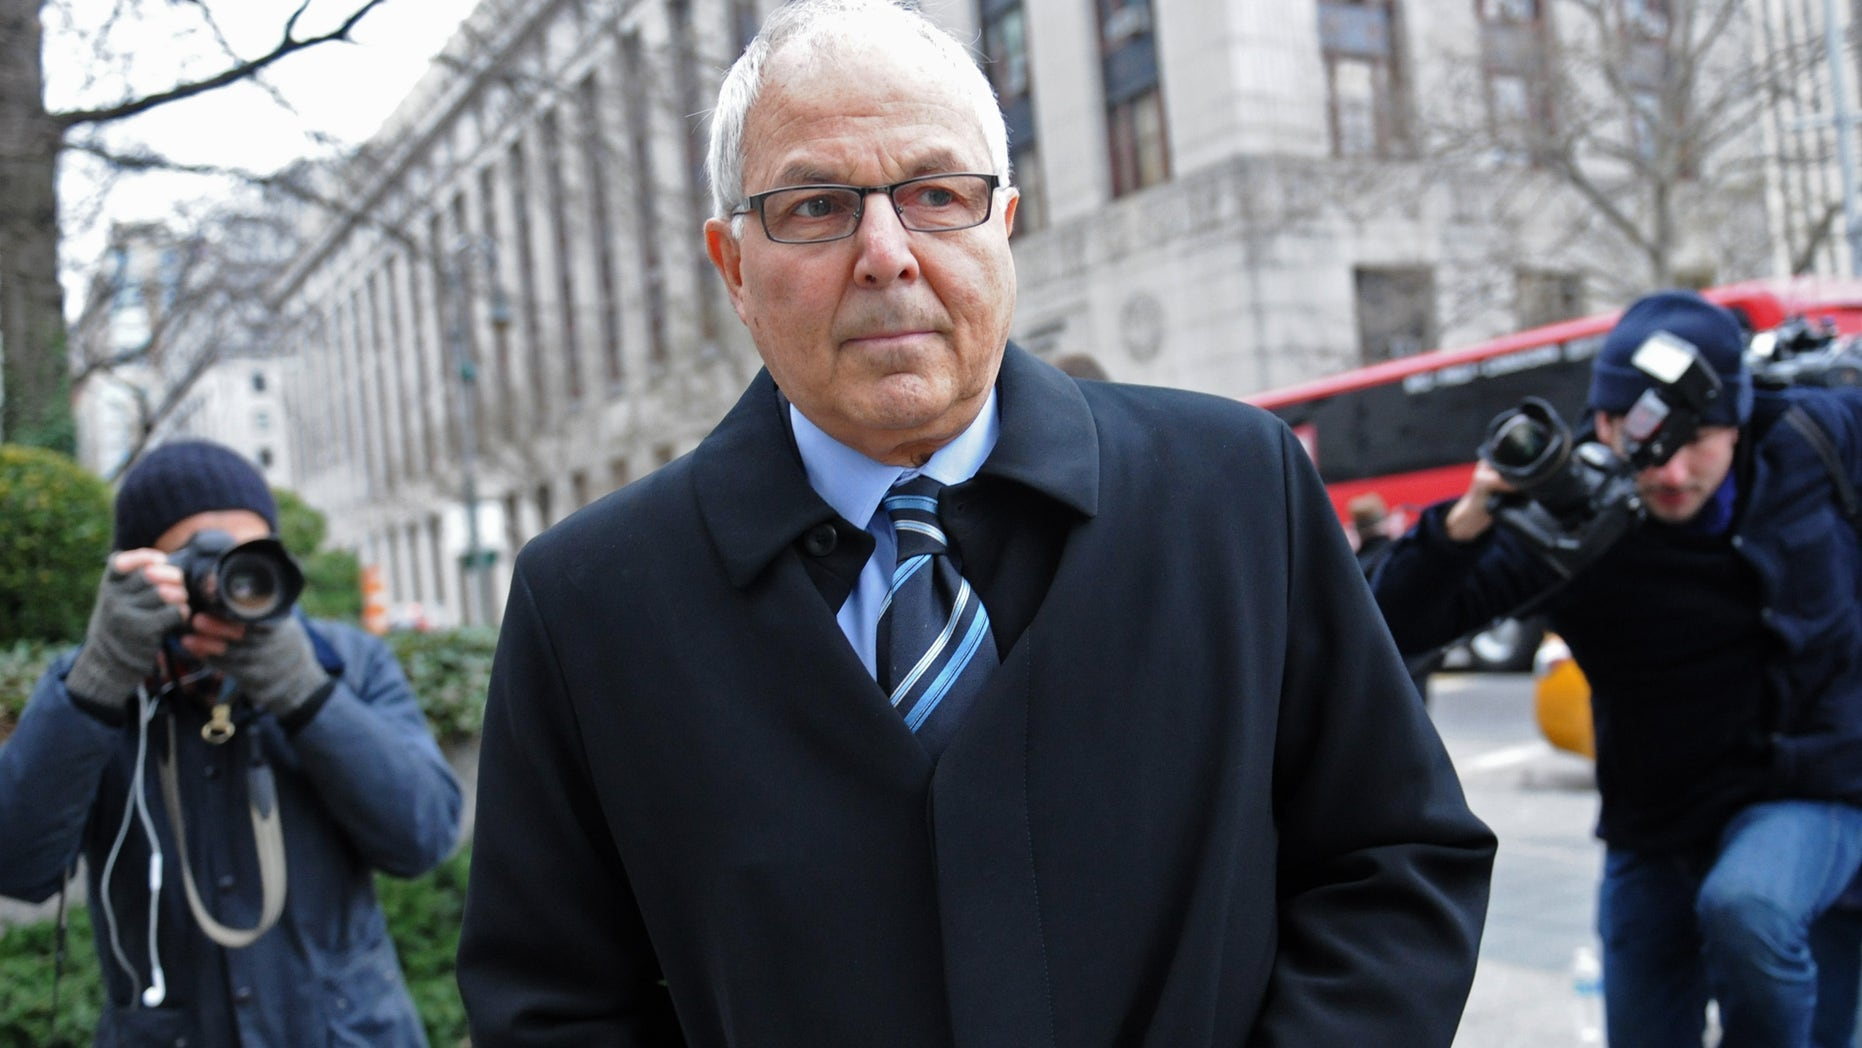 Dec. 20, 2012: Peter Madoff arrives at Manhattan federal court for his sentencing in New York. Madoff, the former senior compliance officer at the Madoff private investment business and brother of Ponzi king Bernard Madoff, pleaded guilty to conspiracy and falsifying books and records of an investment adviser in June.